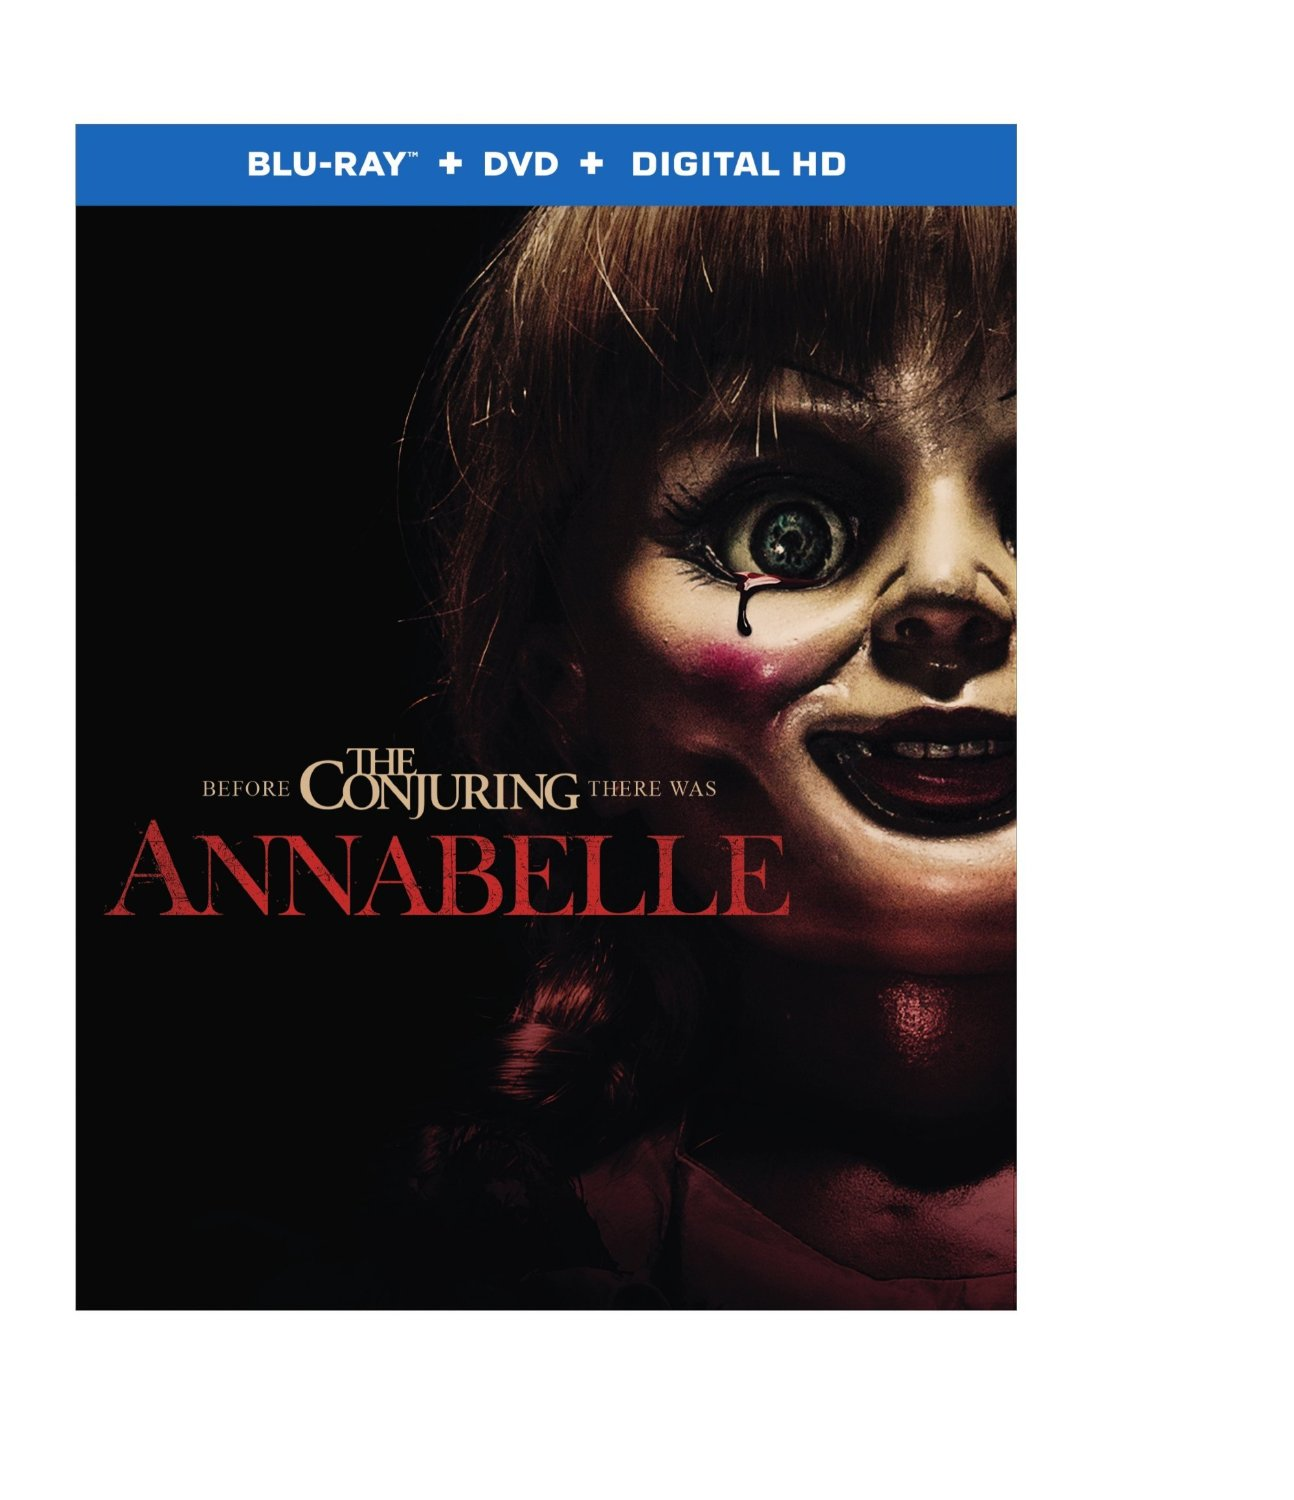 Annabelle [Movie] - Annabelle